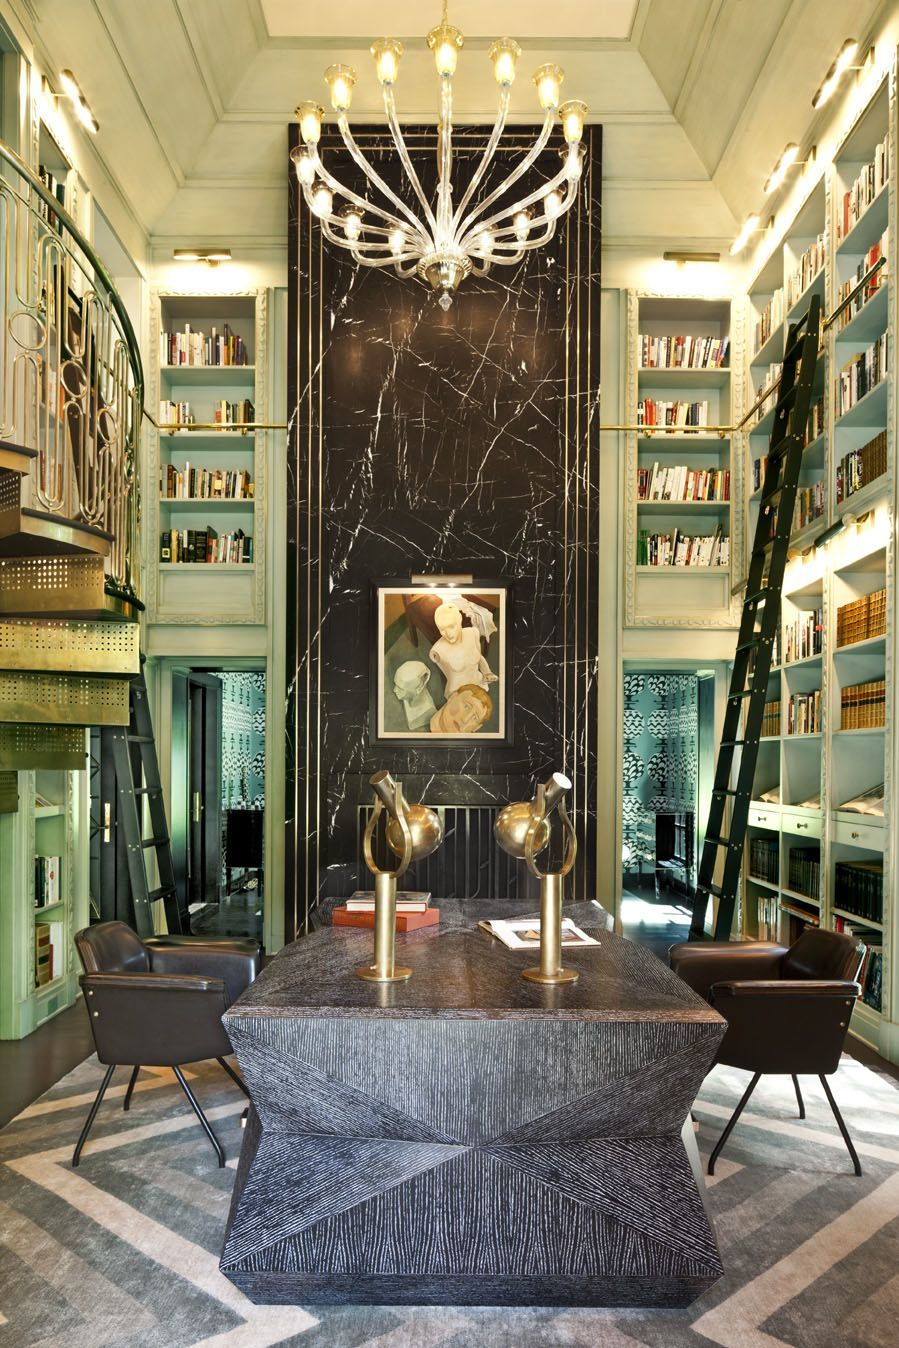 kelly wearstler interiors evergreen residence library from the l ab feature lady luxe an interview with kelly wearstler the reigning queen of american interior design